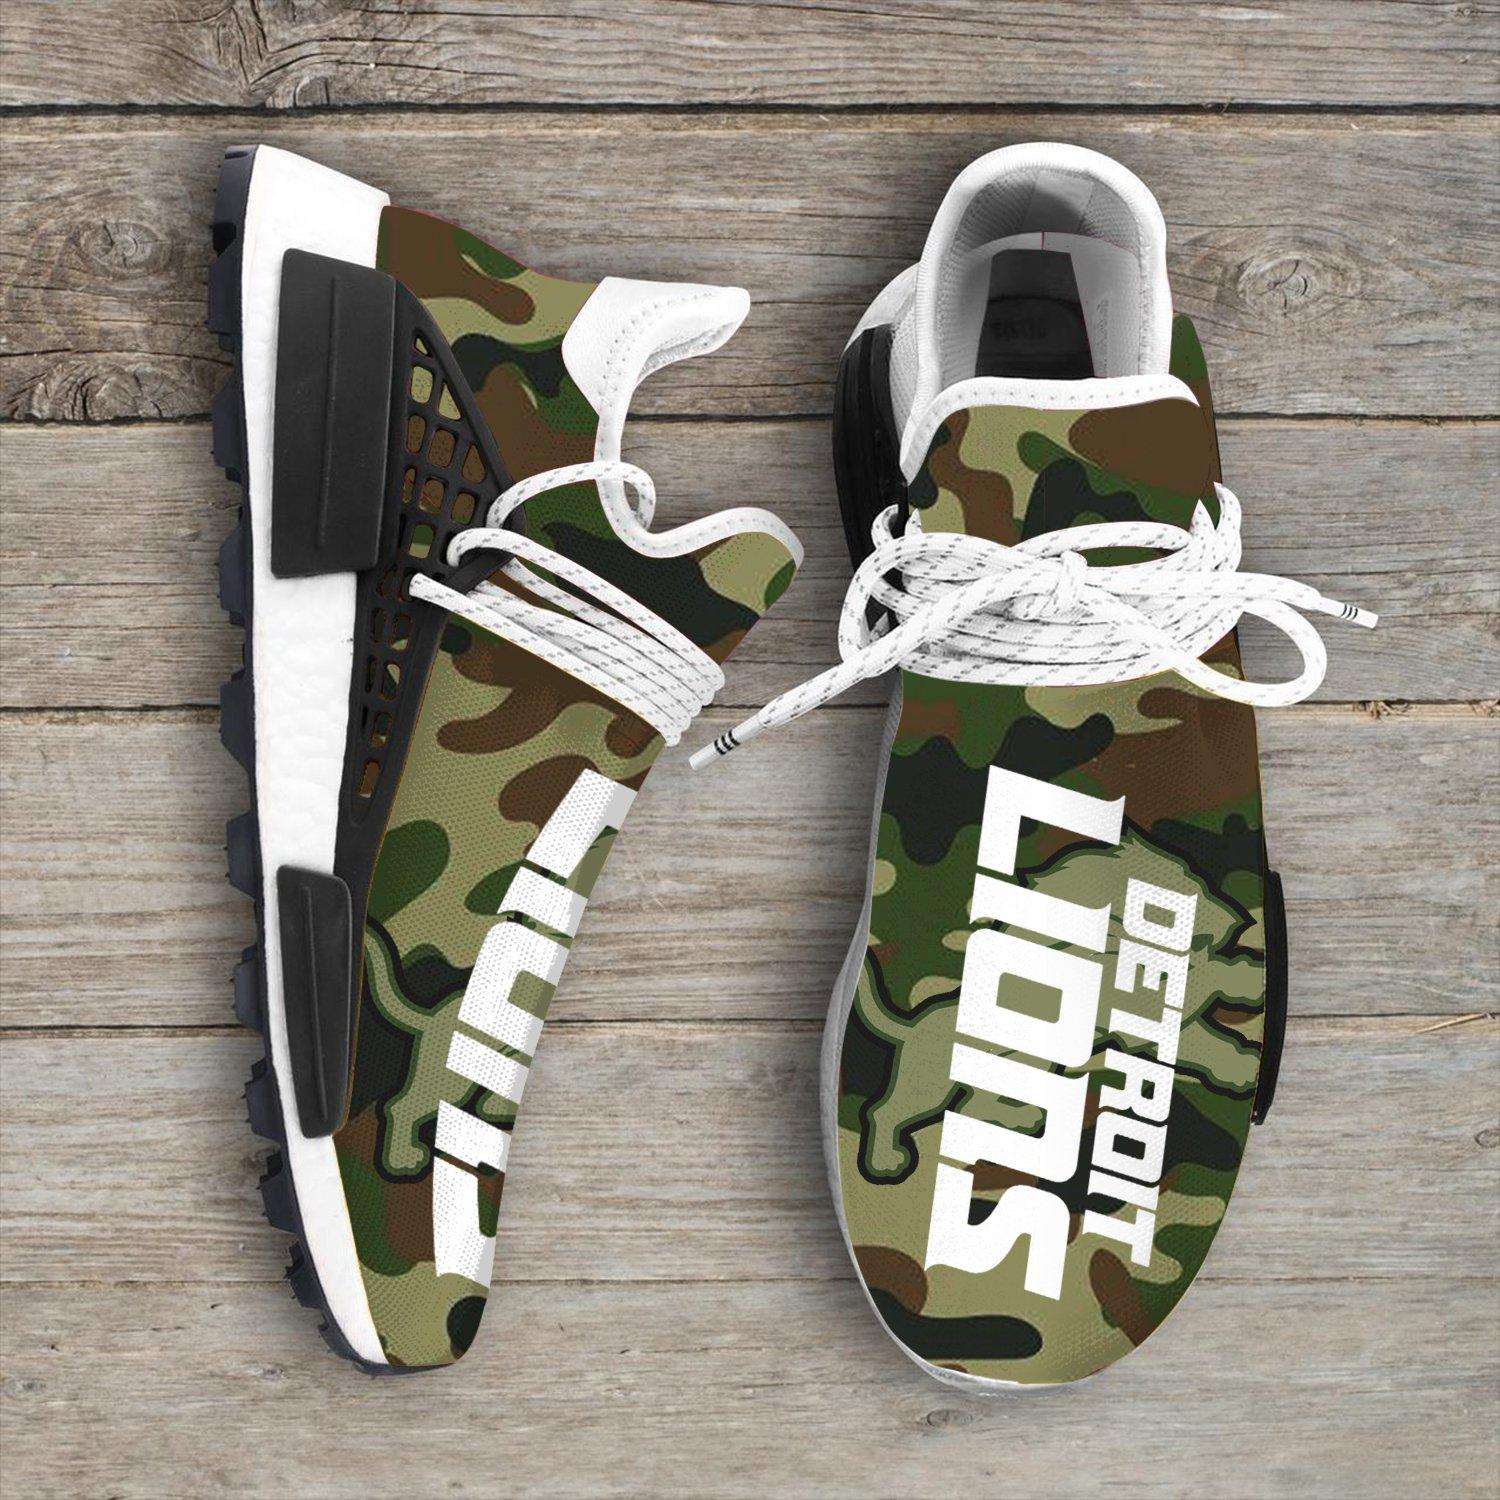 Camo Camouflage Detroit Lions Nfl NMD Human Shoes